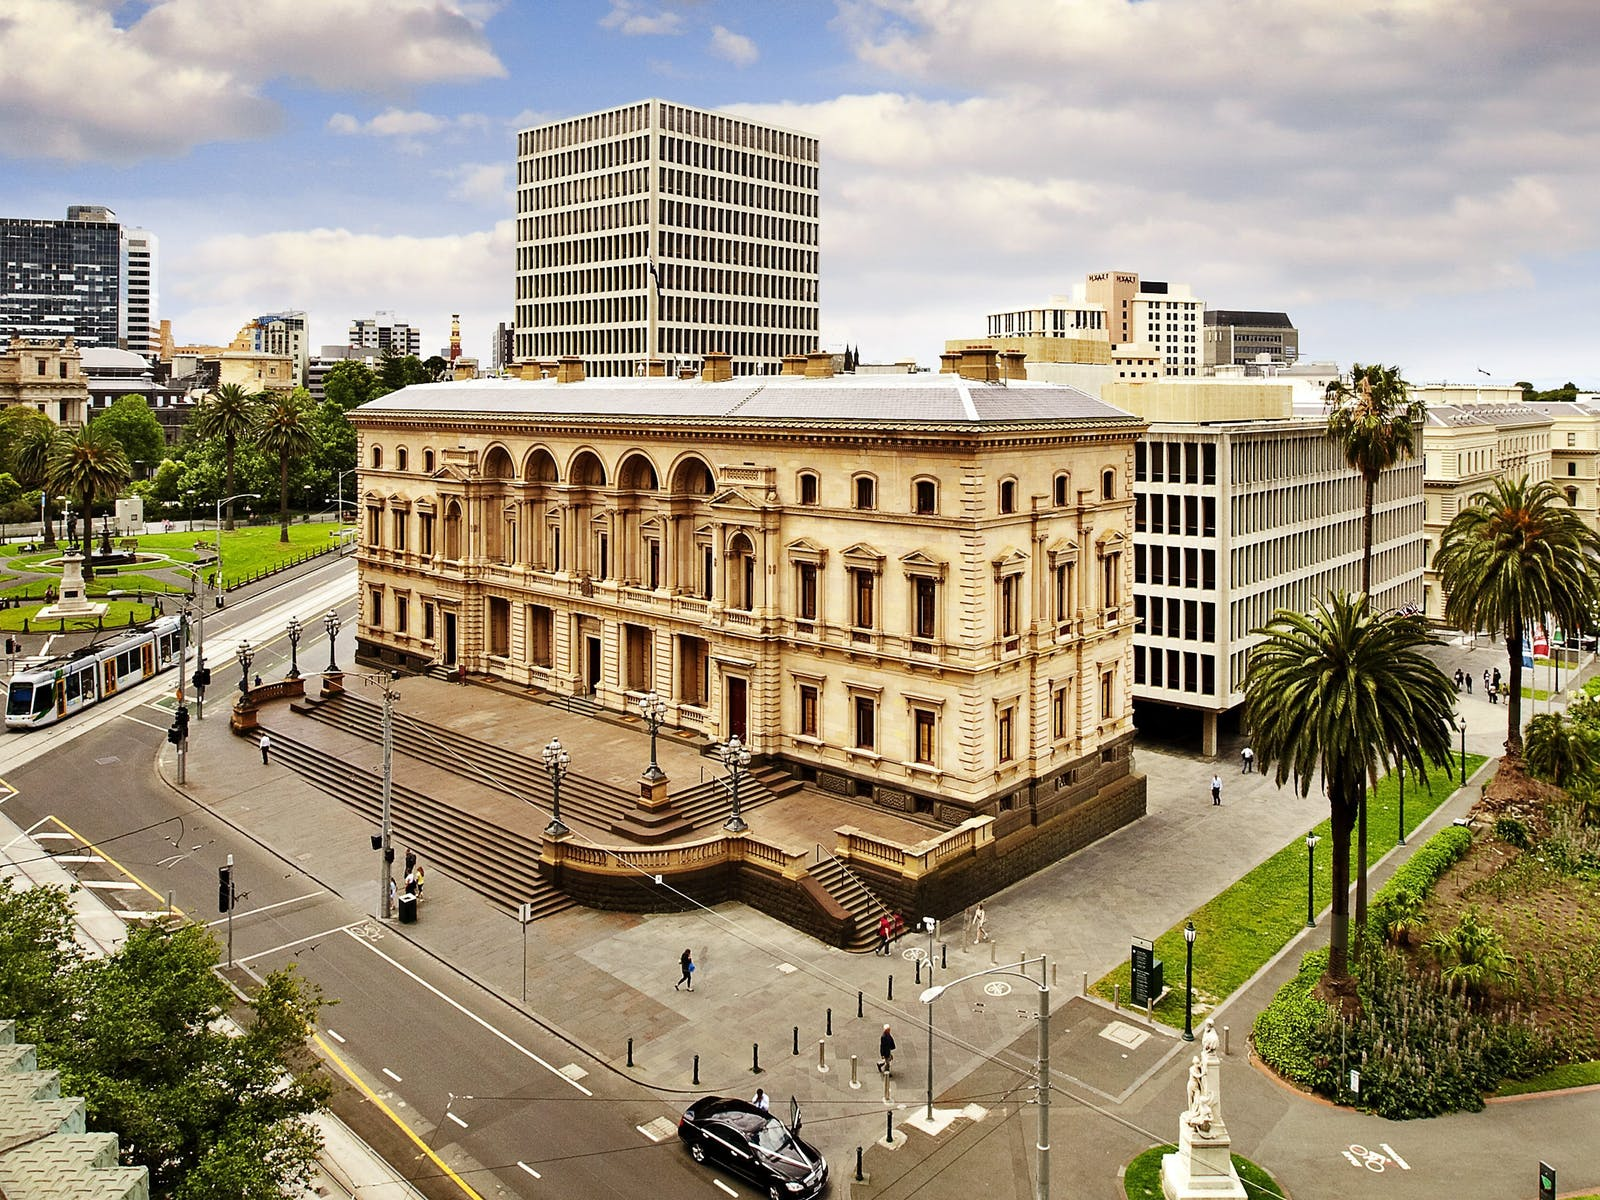 The Old Treasury Building during the day.